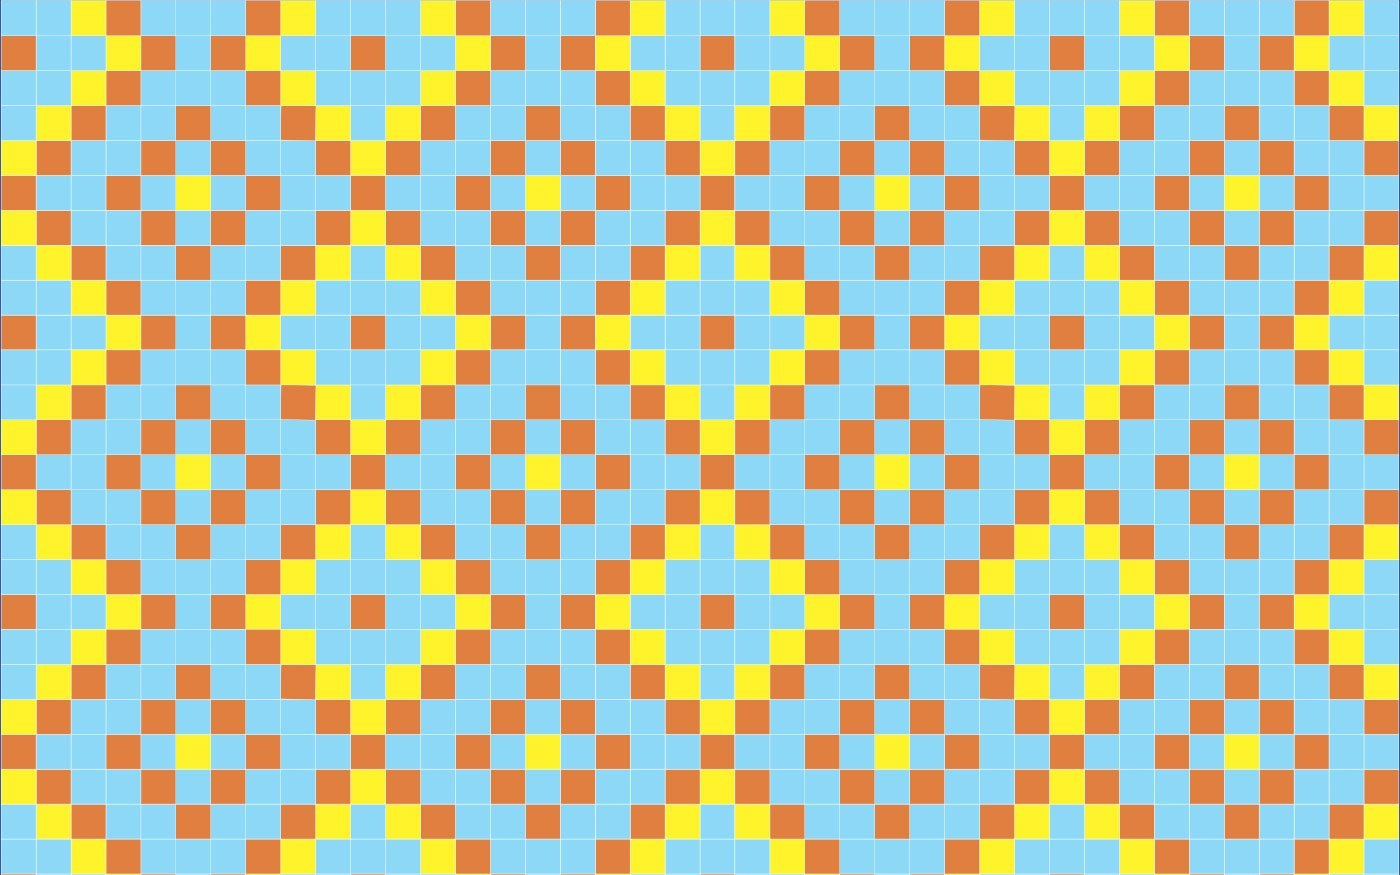 Pattern for Sammaan to be executed in Tiles